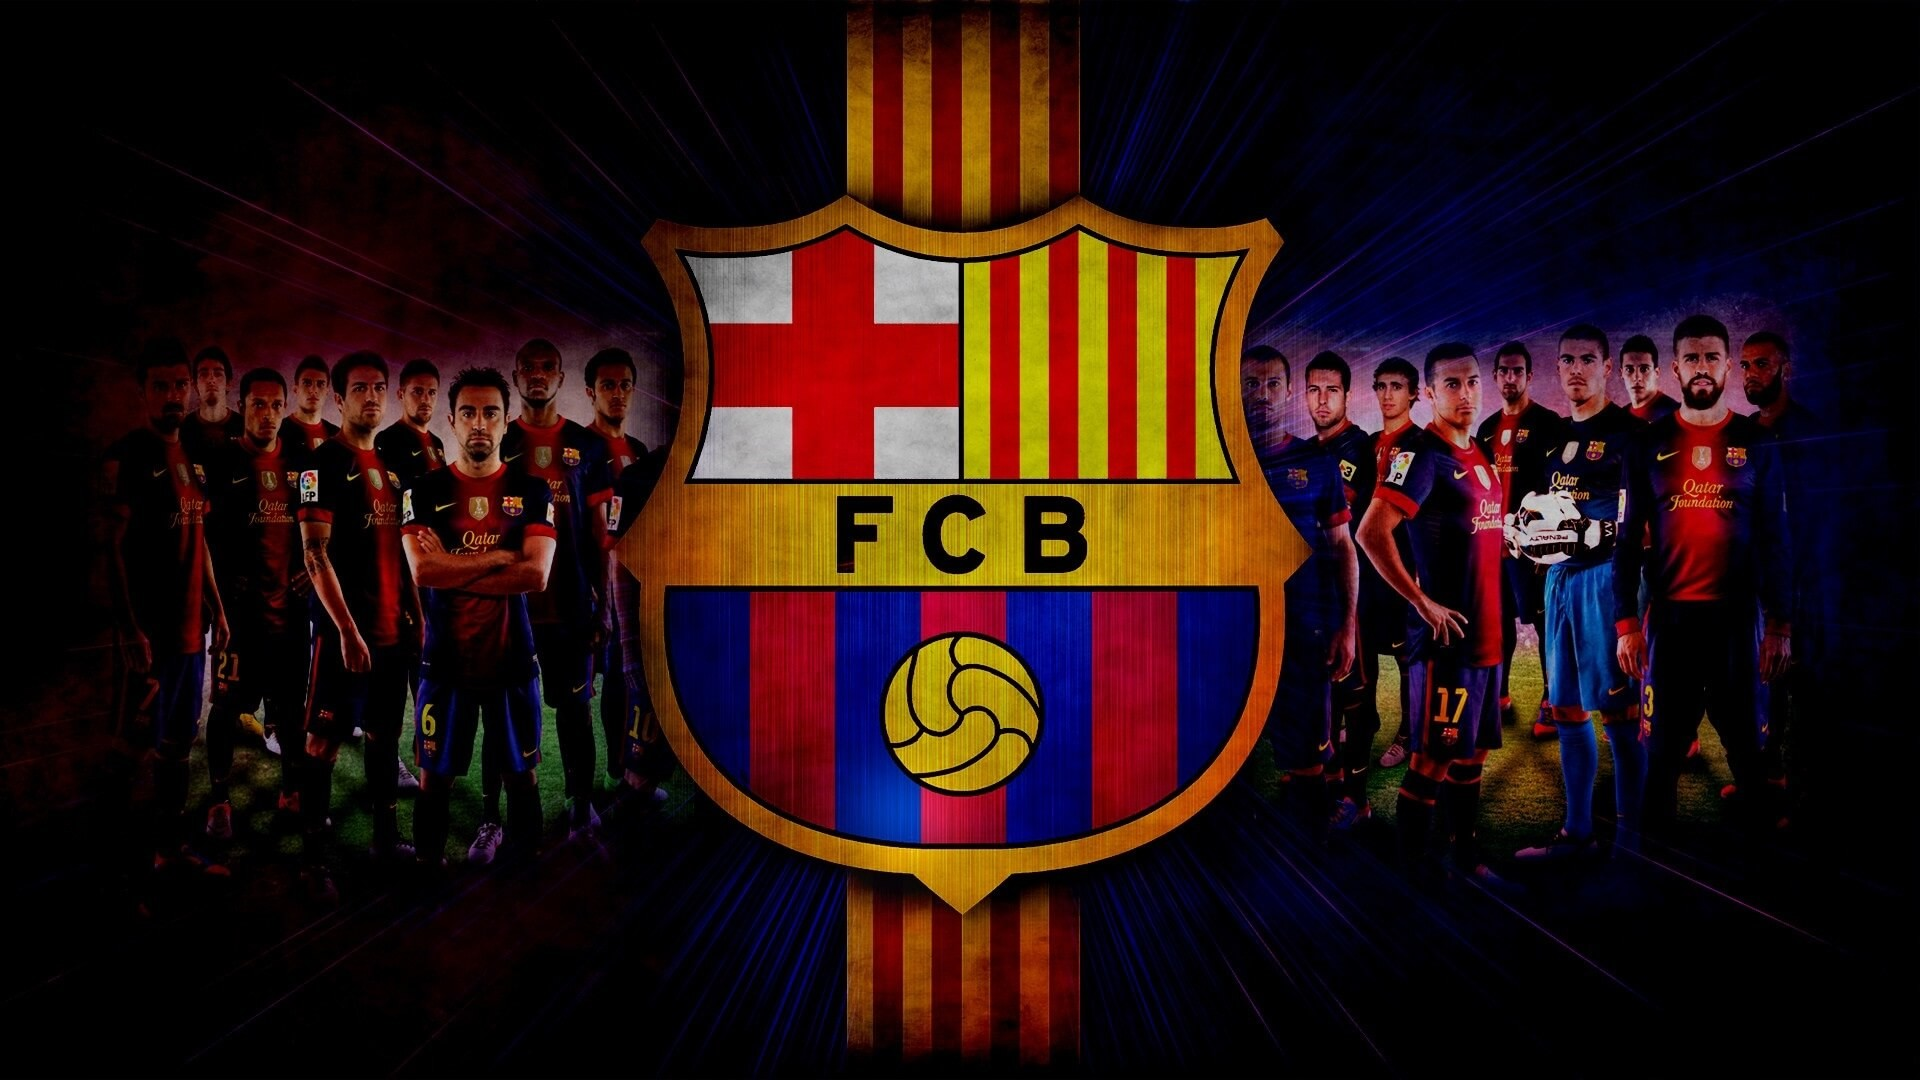 Res: 1920x1080, Fc Barcelona Wallpapers for iPad